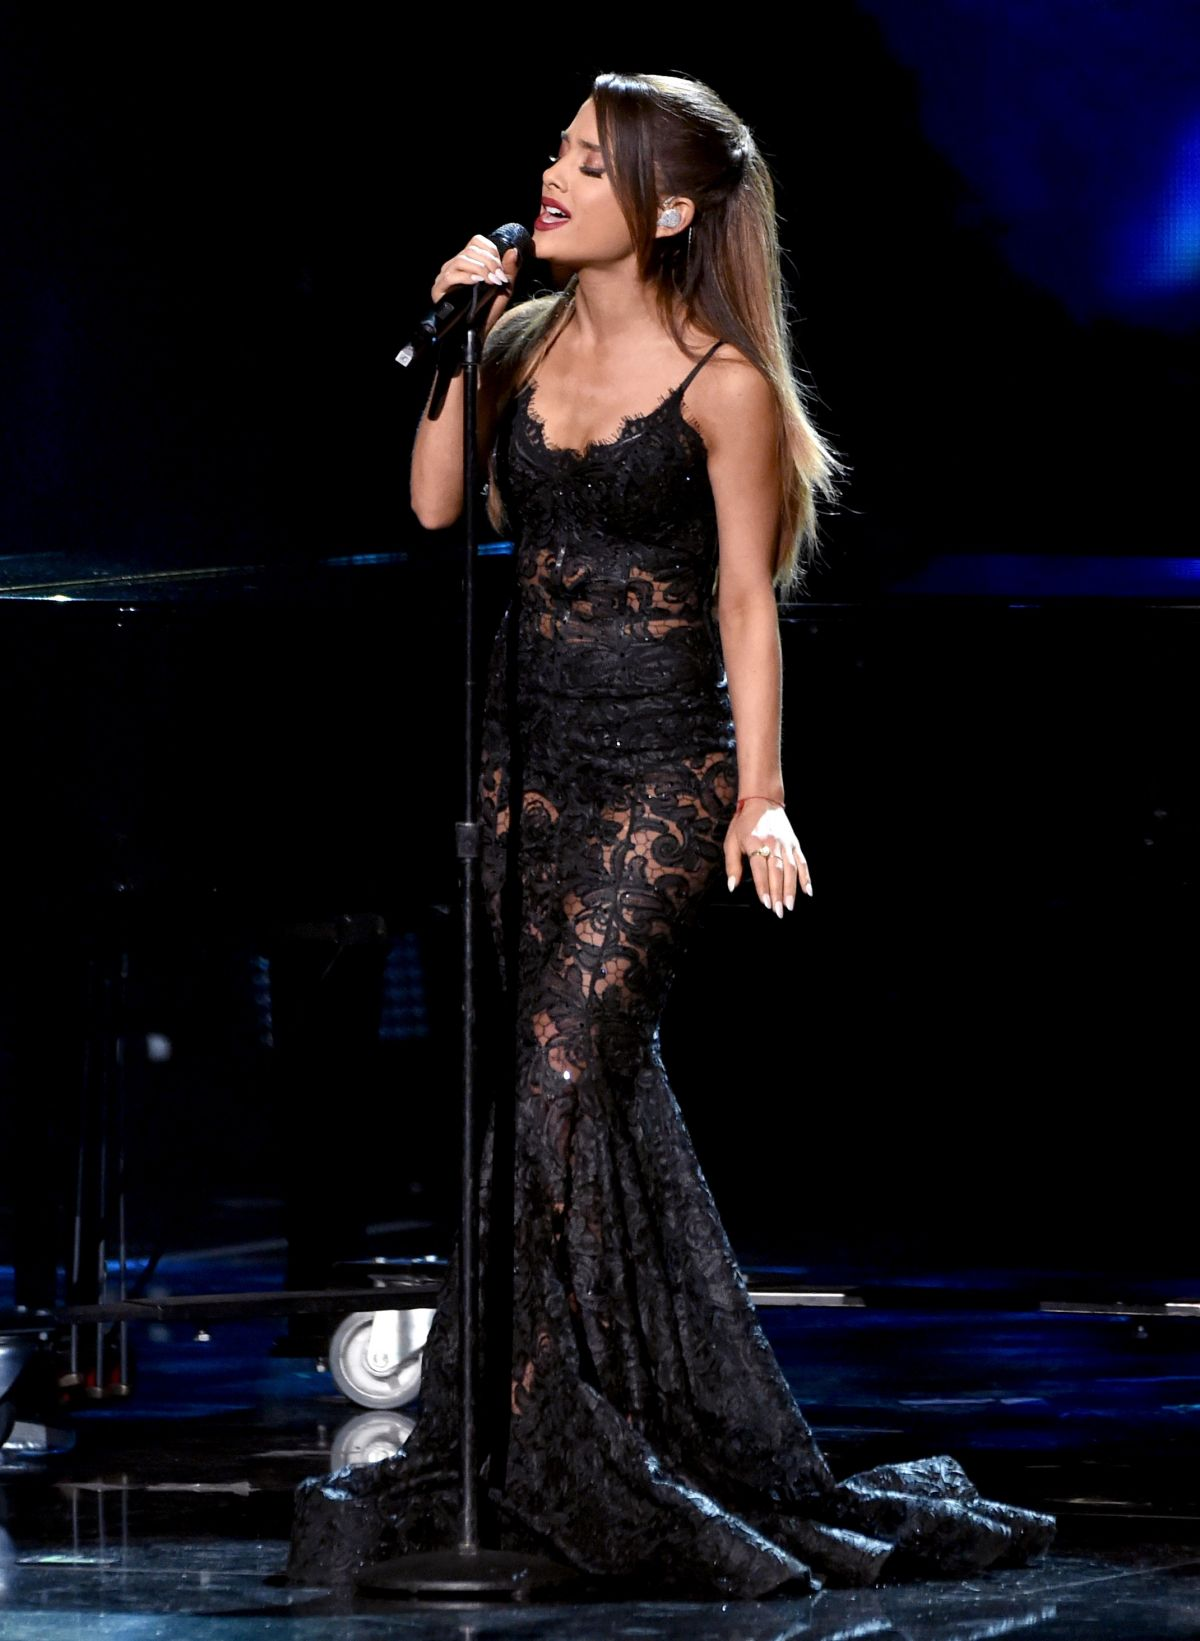 ariana grande at 2017 american music awards 3